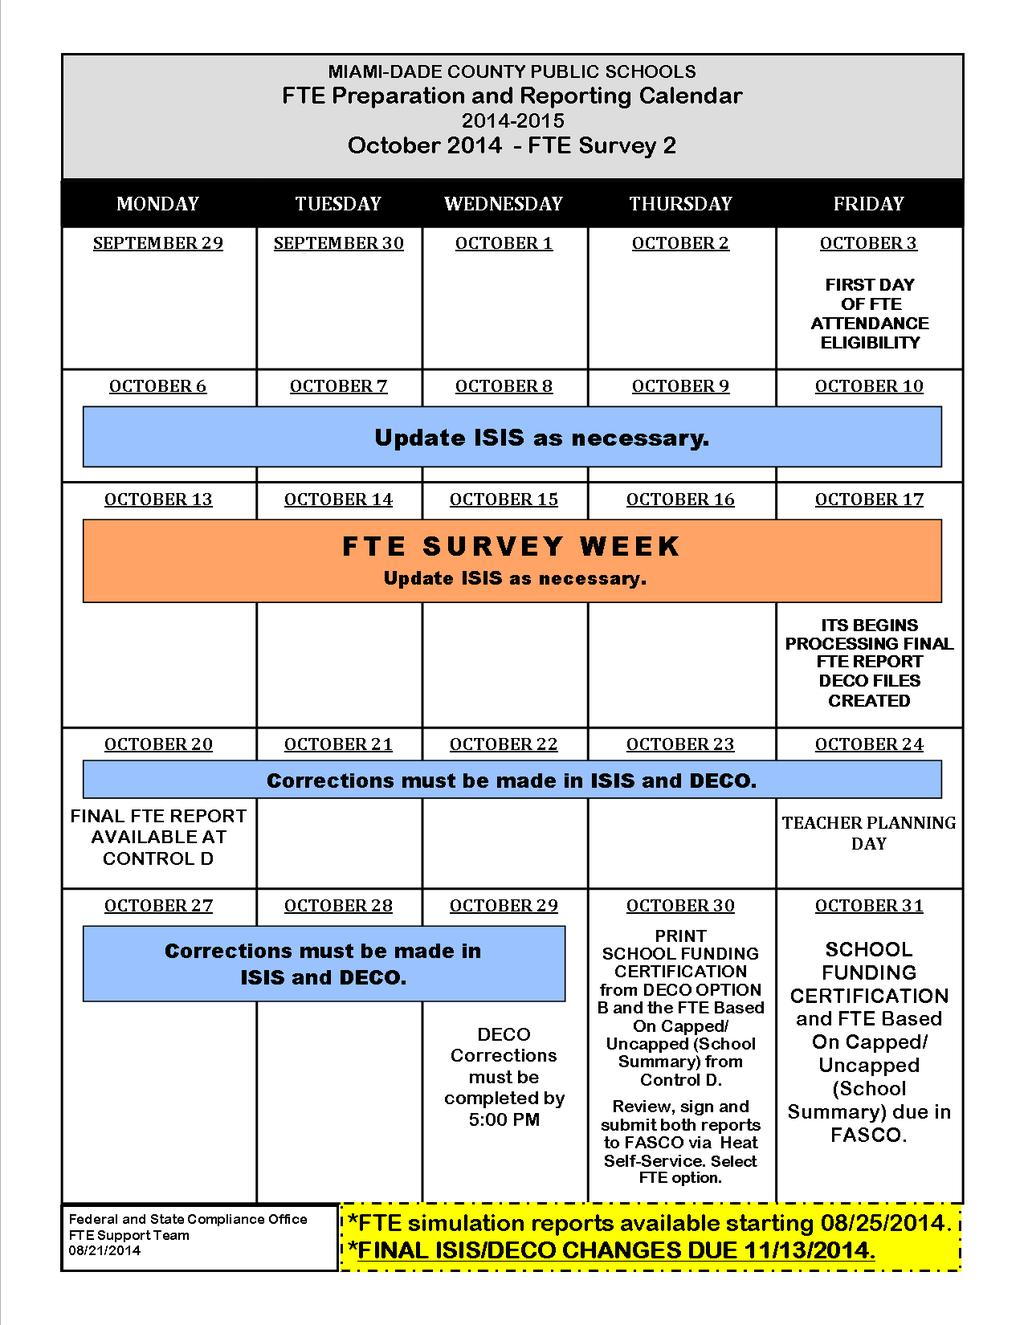 FTE ATTENDANCE ELIGIBILITY 11 DAY WINDOW PERIOD A student is eligible for  FTE funding if the